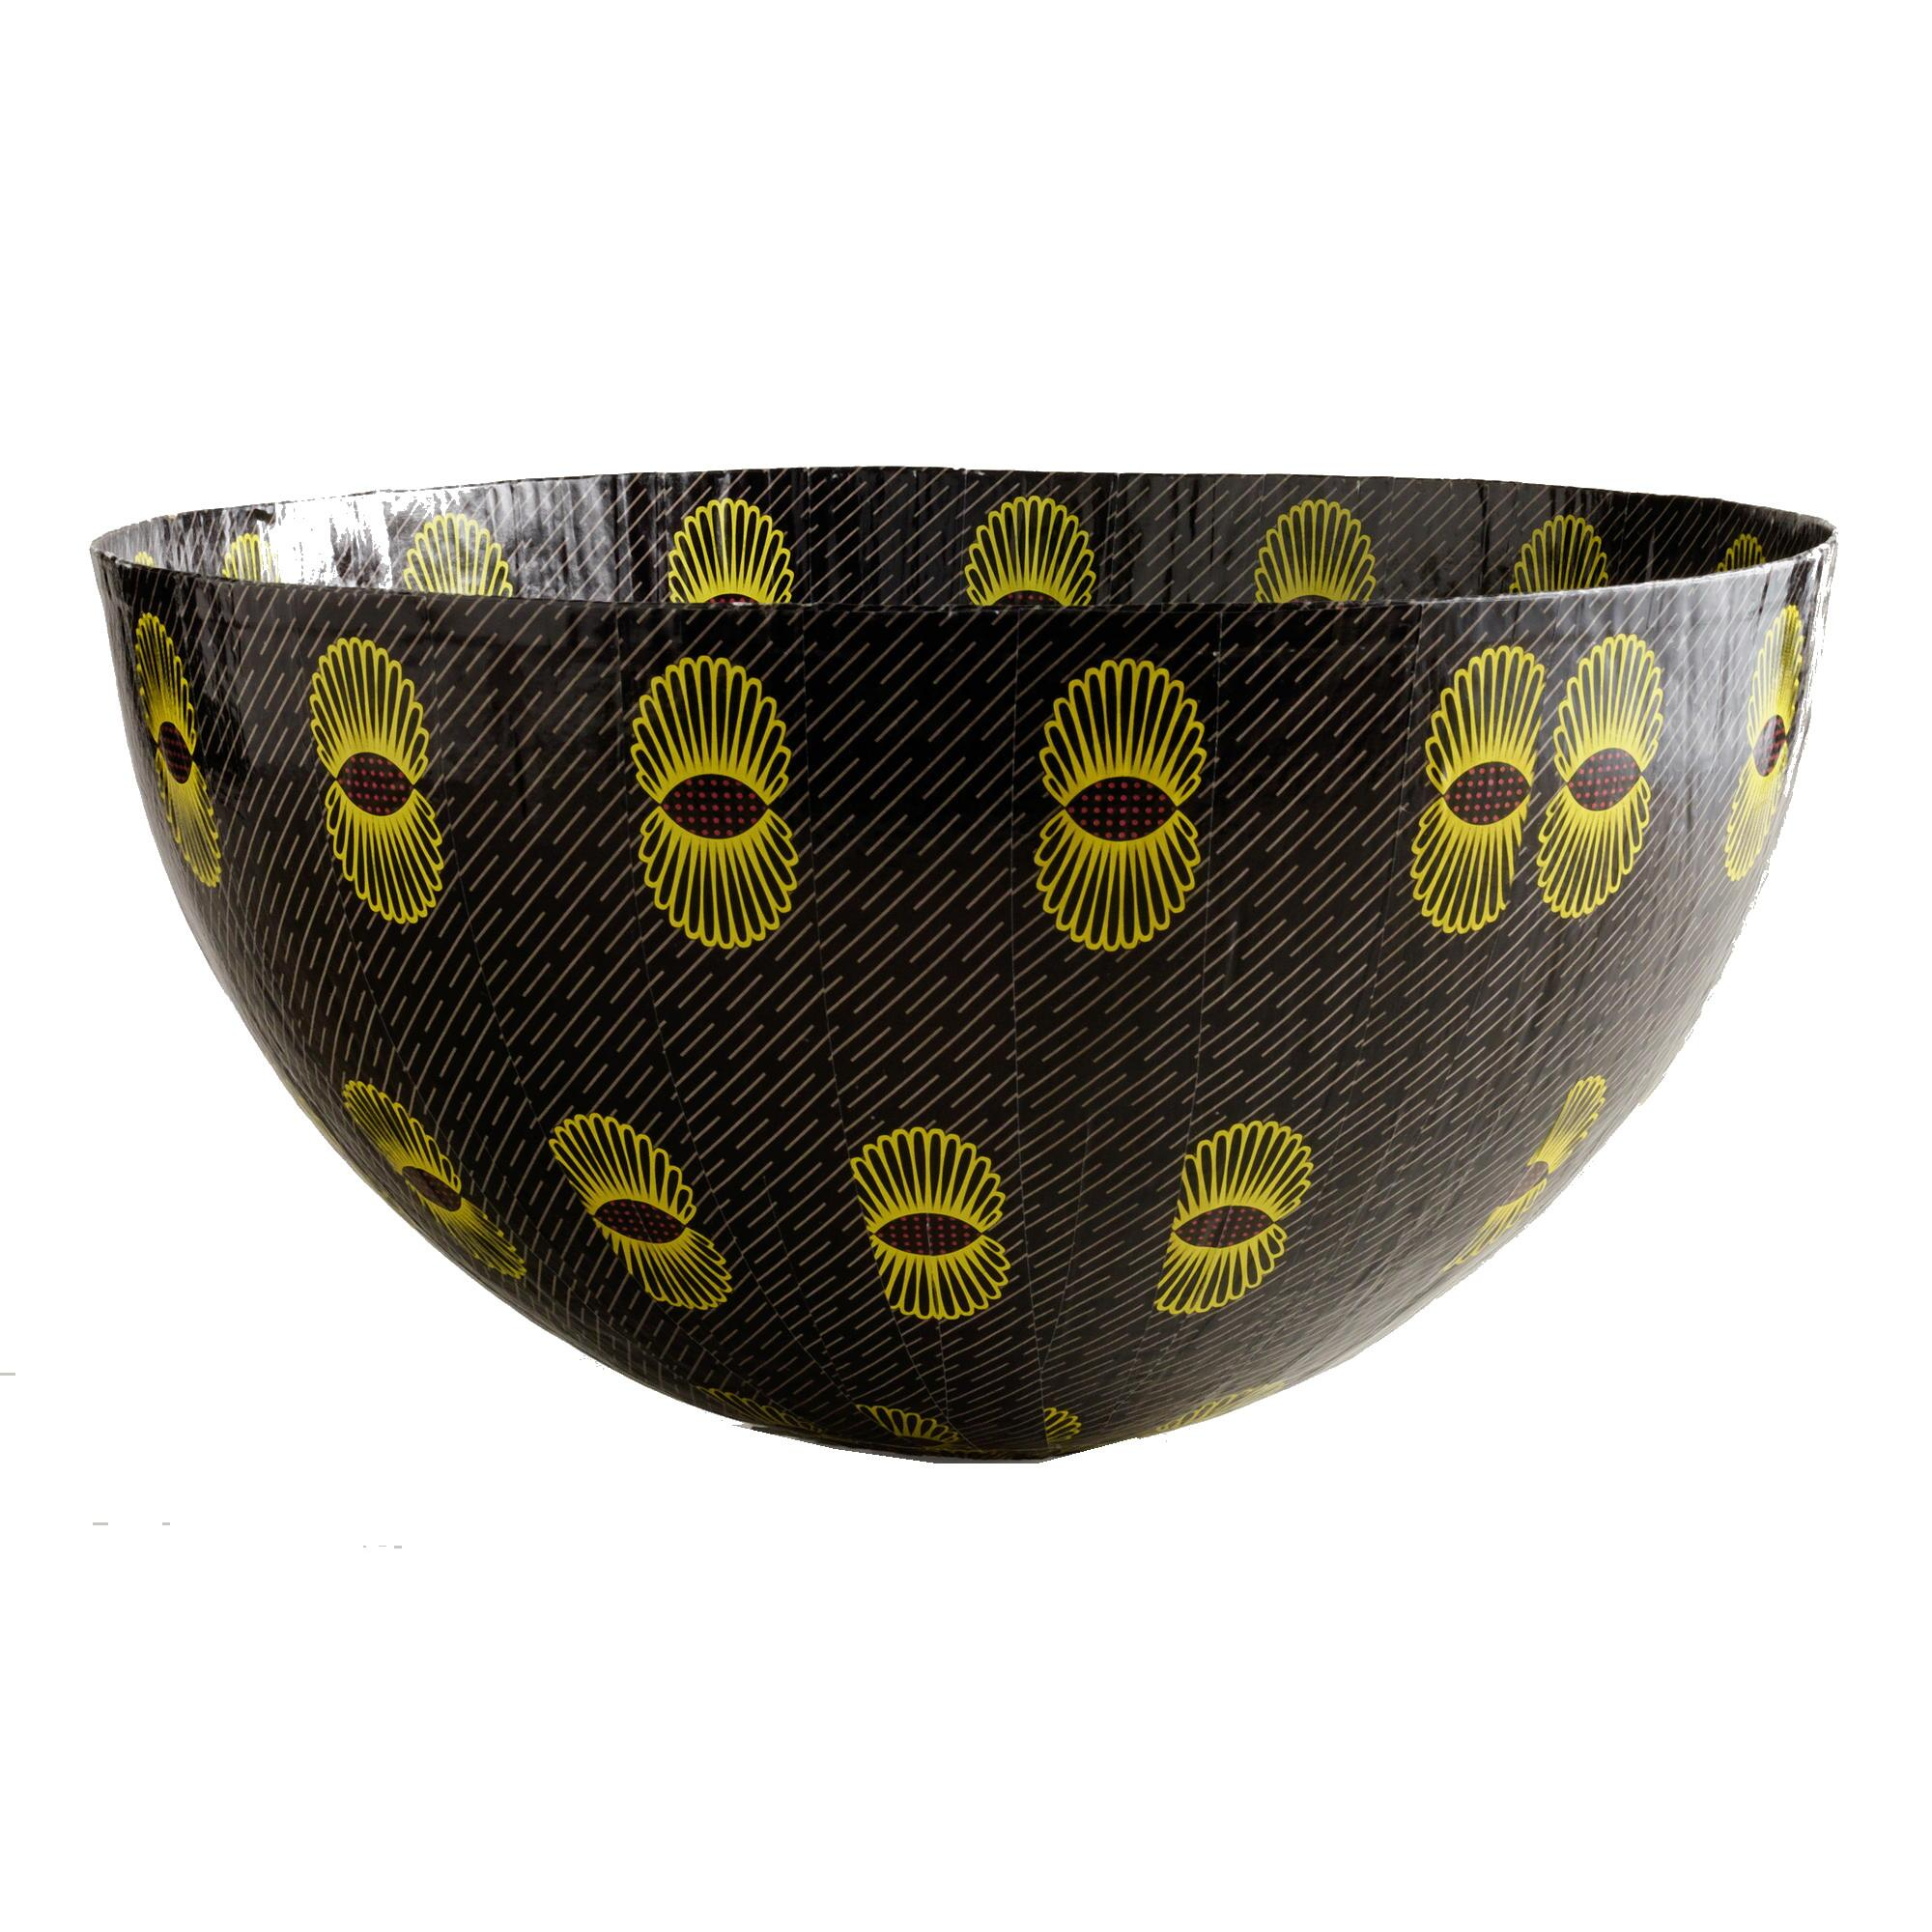 Twitter / ethicalgiftsau: #fairtrade #ecofriendly #African ...